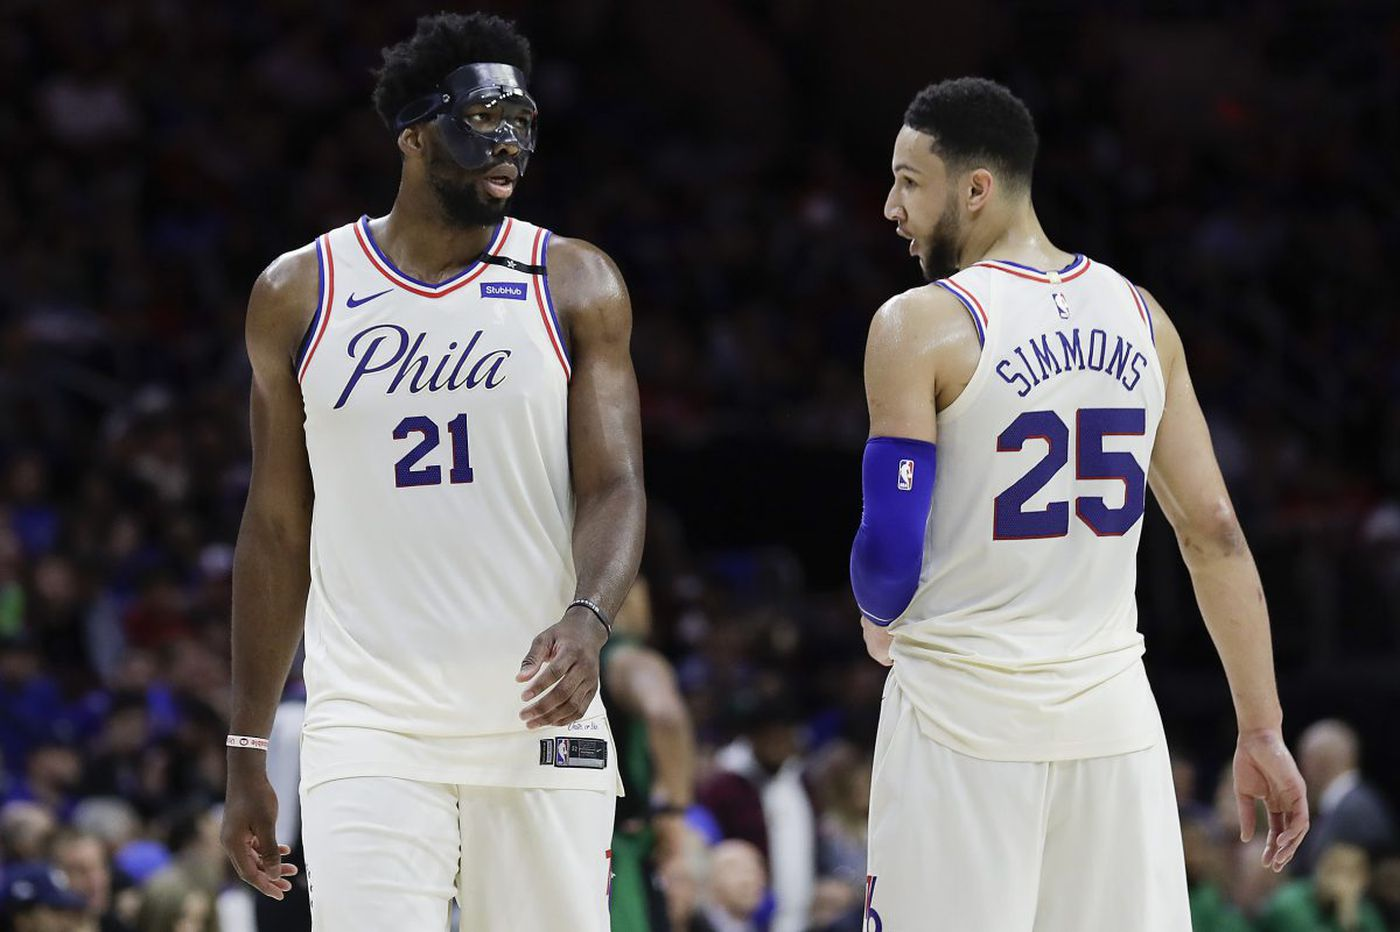 The real story of Sixers-Celtics? It's simpler than some think | David Murphy